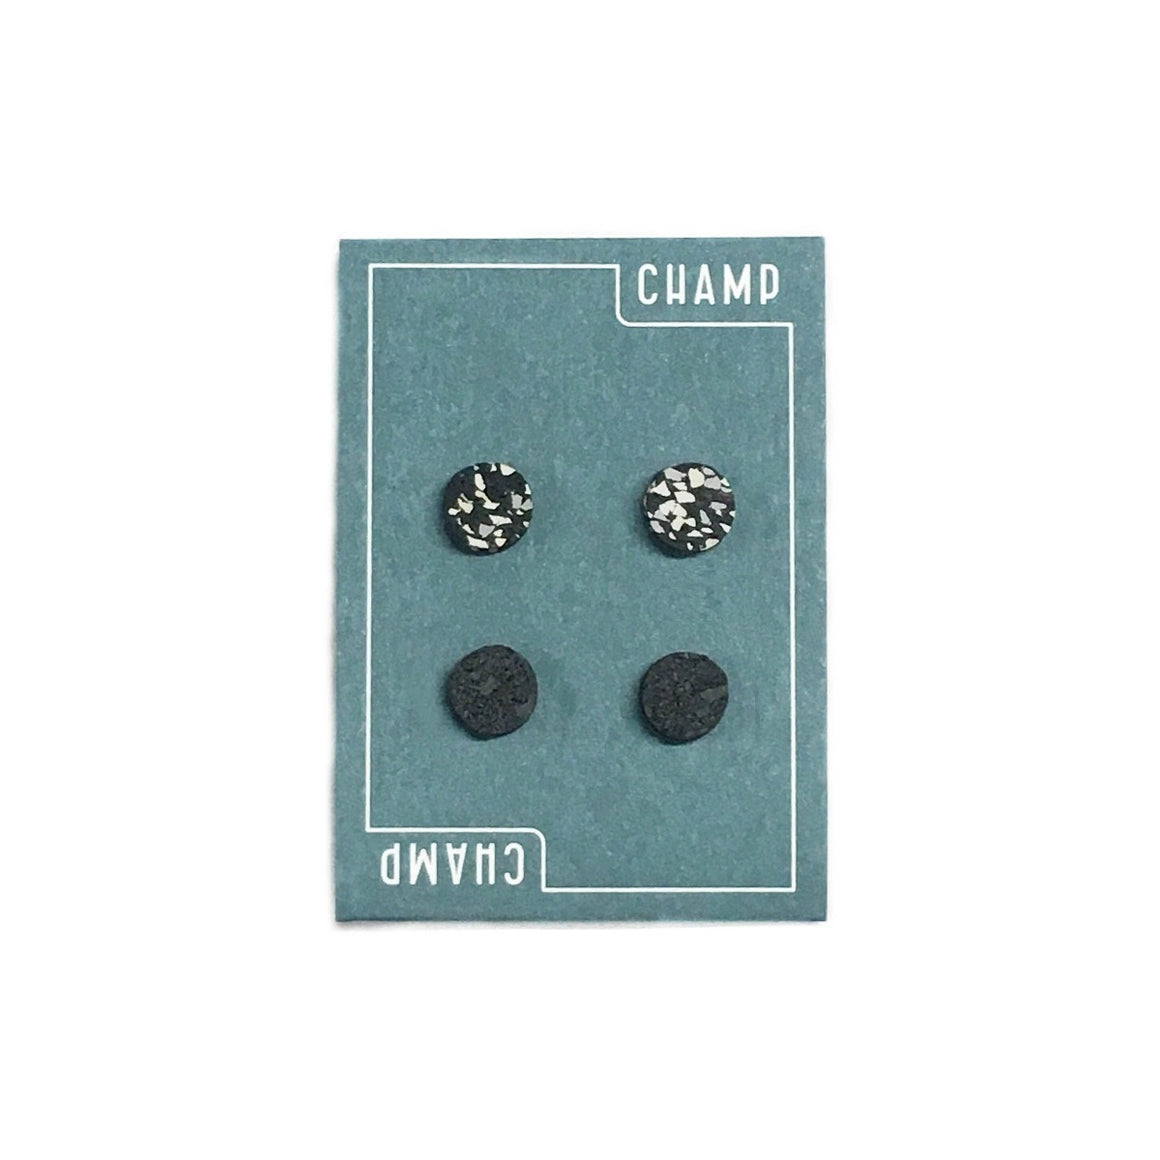 Navy blue card featuring a white lined border with the word Champ on it which includes four studs two in black and then the other two in a black and white speckle